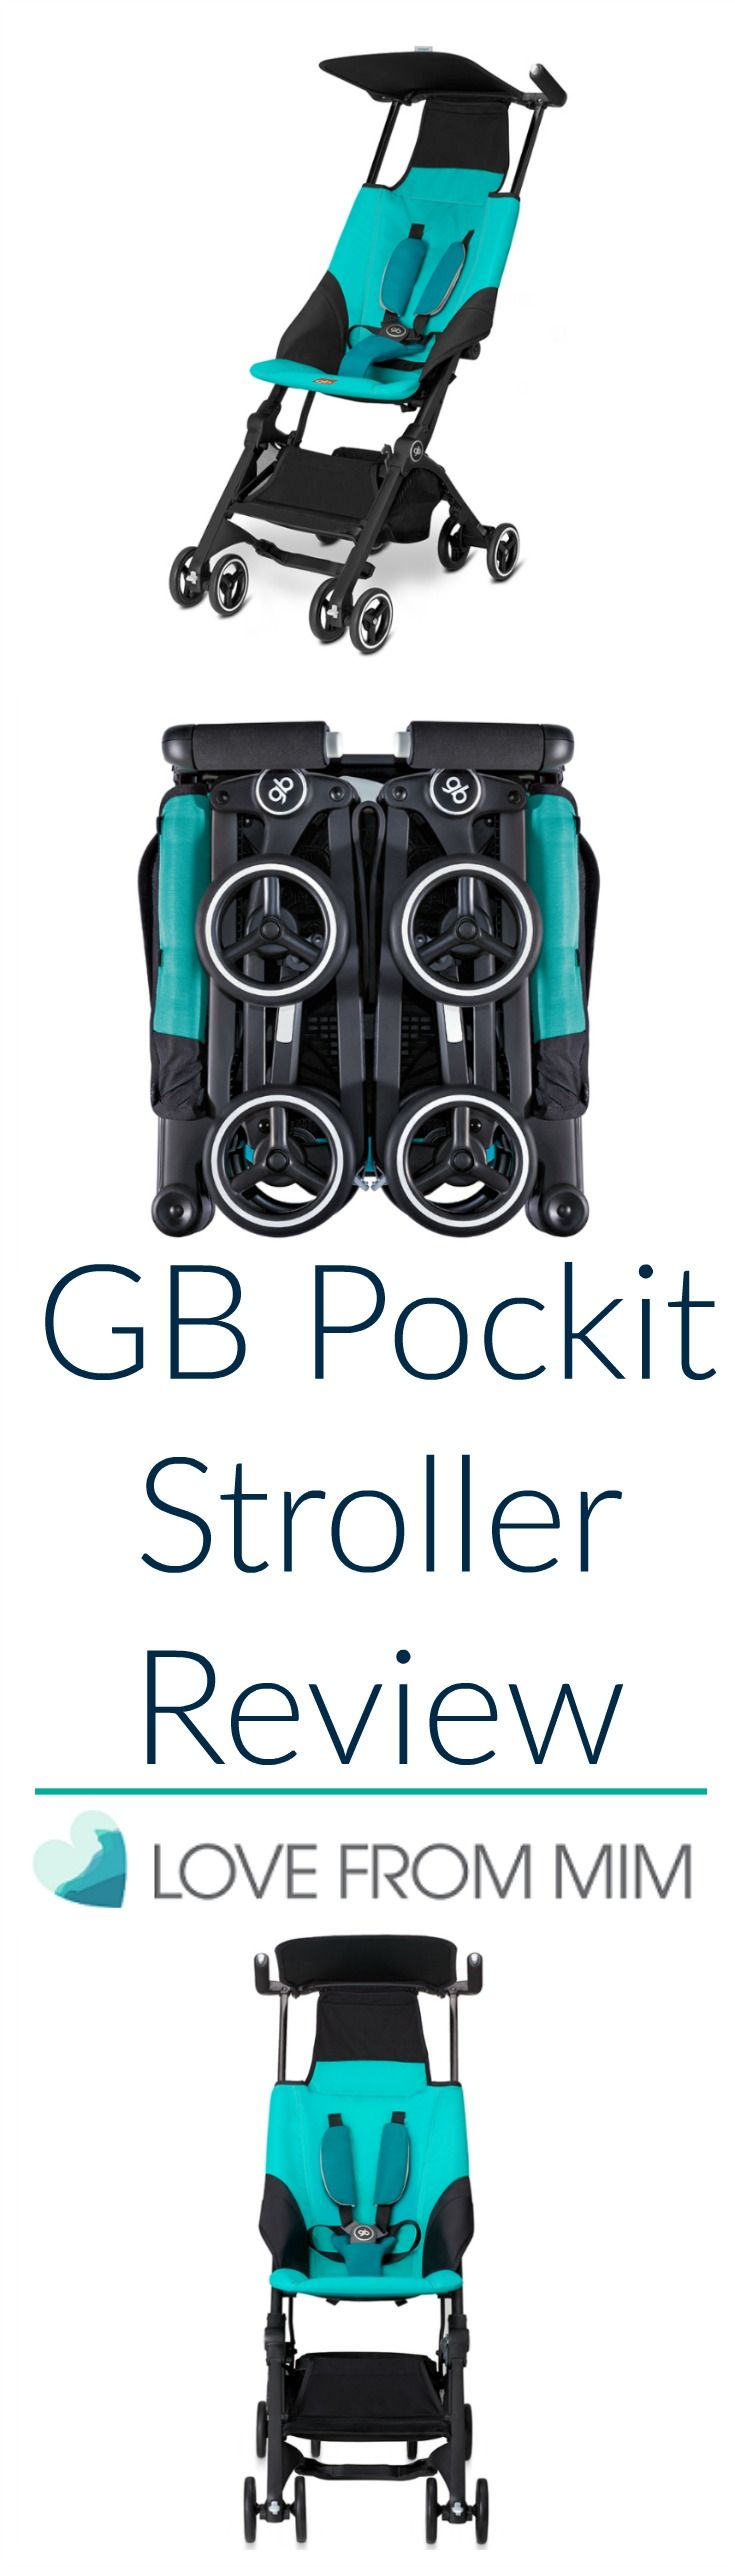 GB Pockit Stroller Review Travel stroller, Best